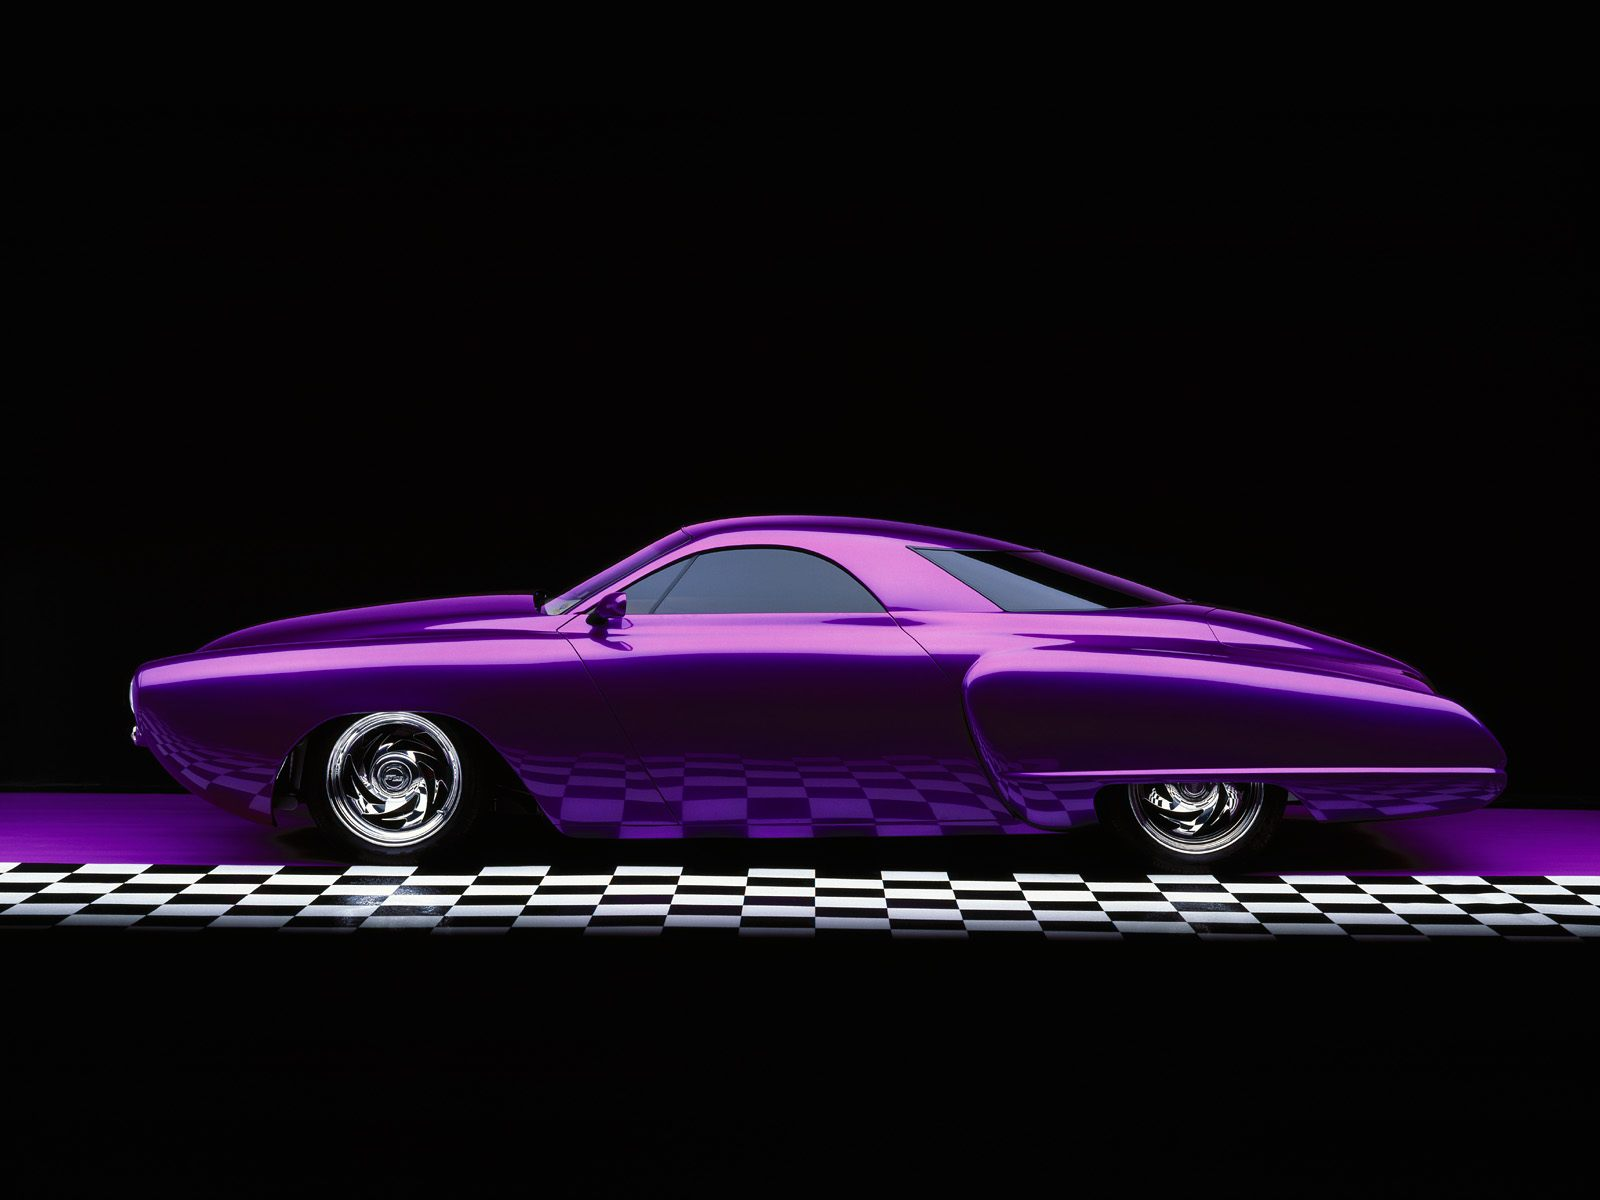 cool backgrounds cars | Online Auto Book